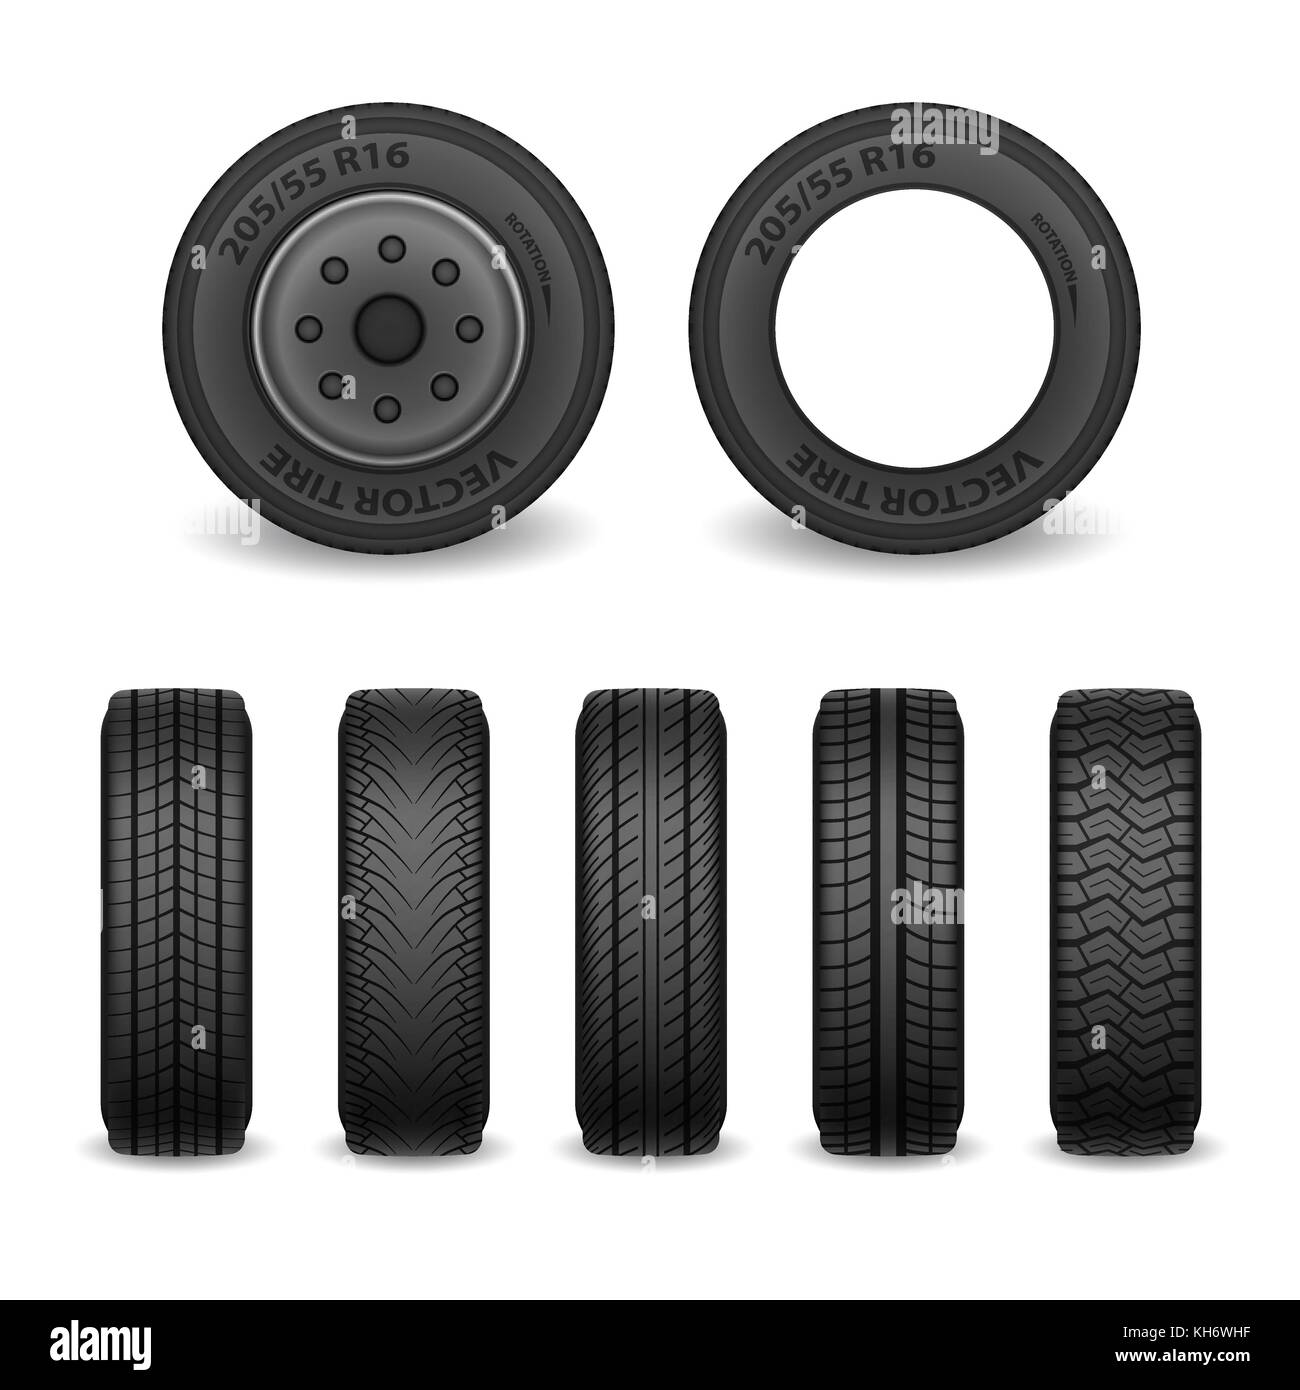 Realistic vector tires set. Car tires with different tread marks. Vector wheel icons - Stock Image